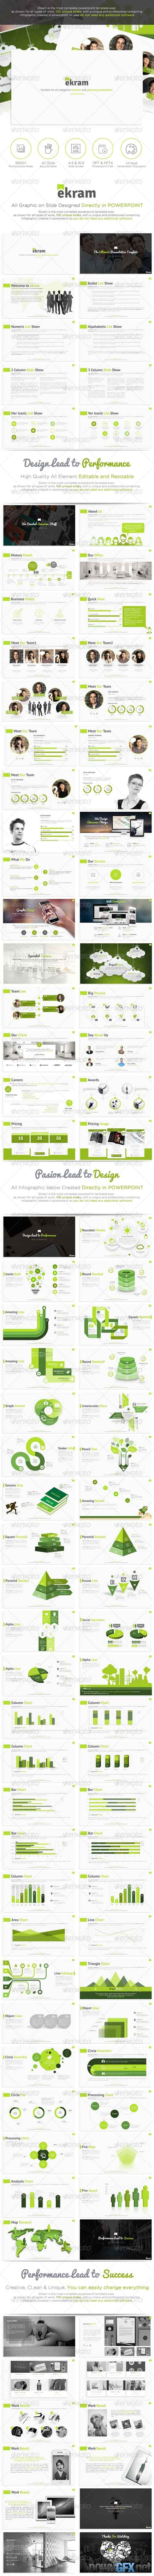 Ekram - The Most Complete PowerPoint Template 8054681